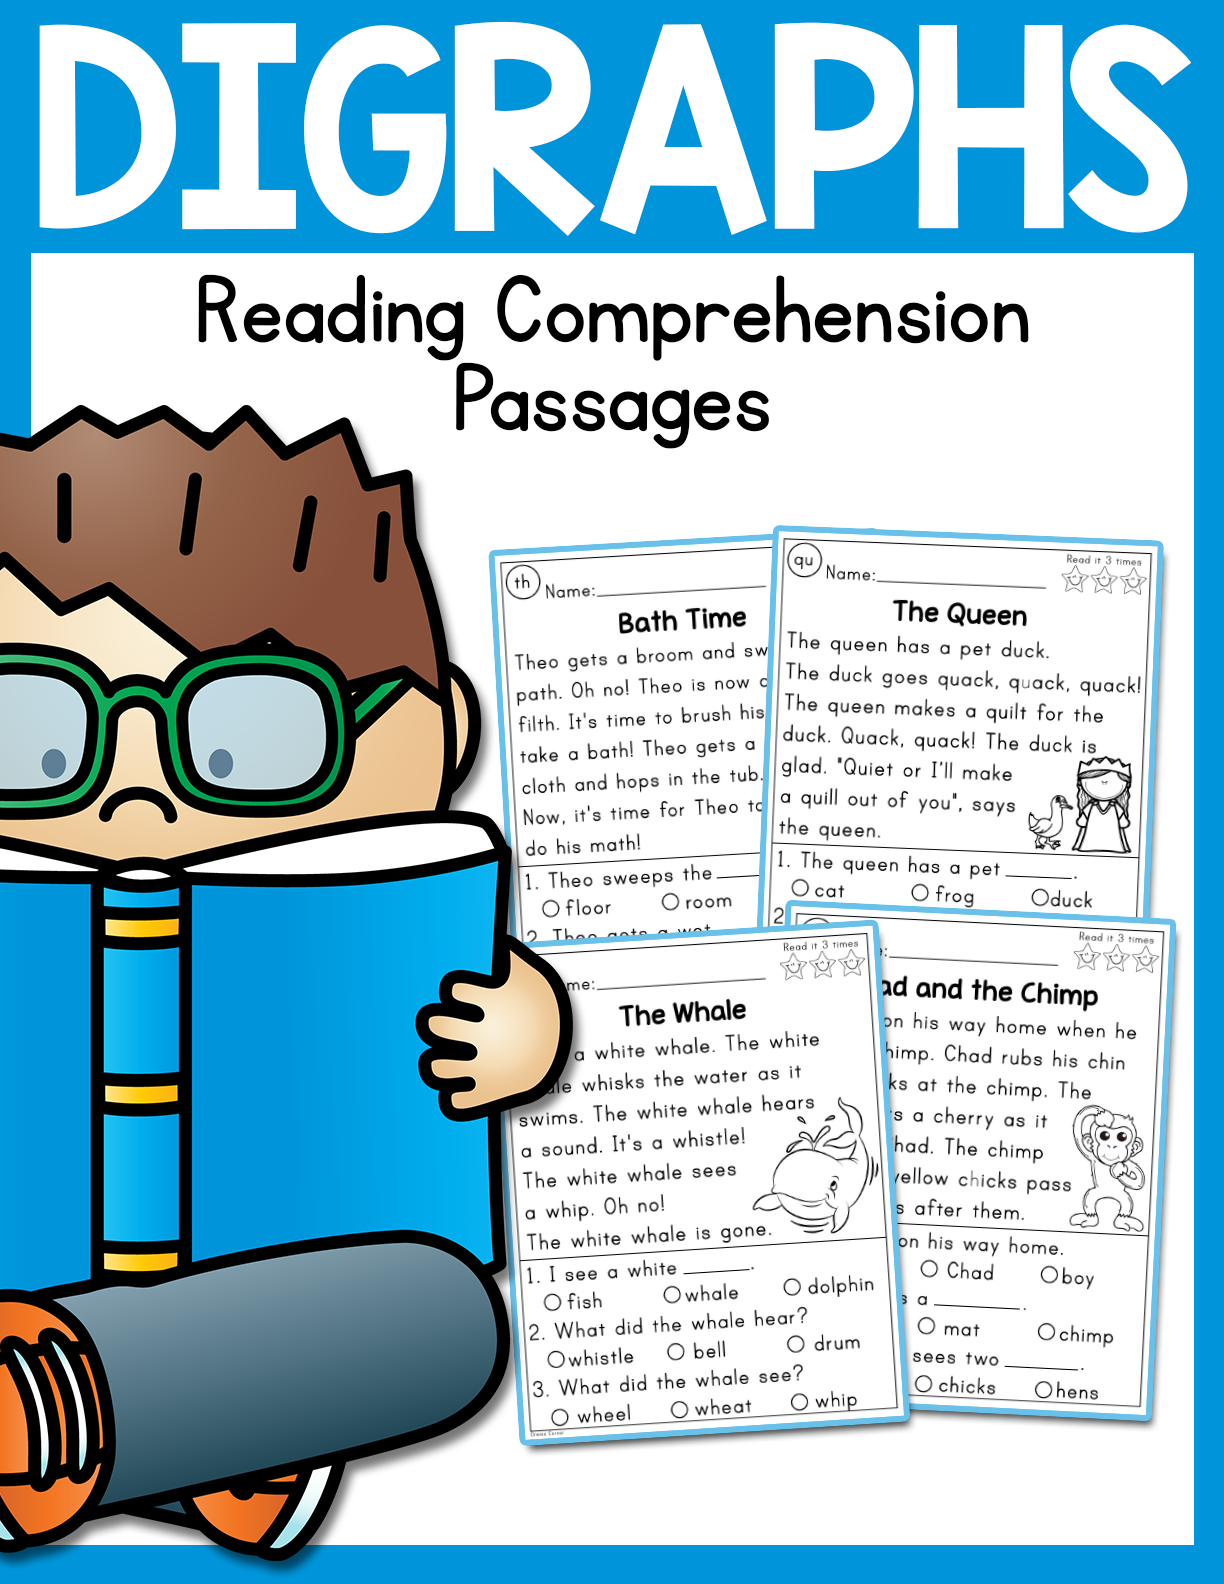 Digraphs Reading Comprehension Passages